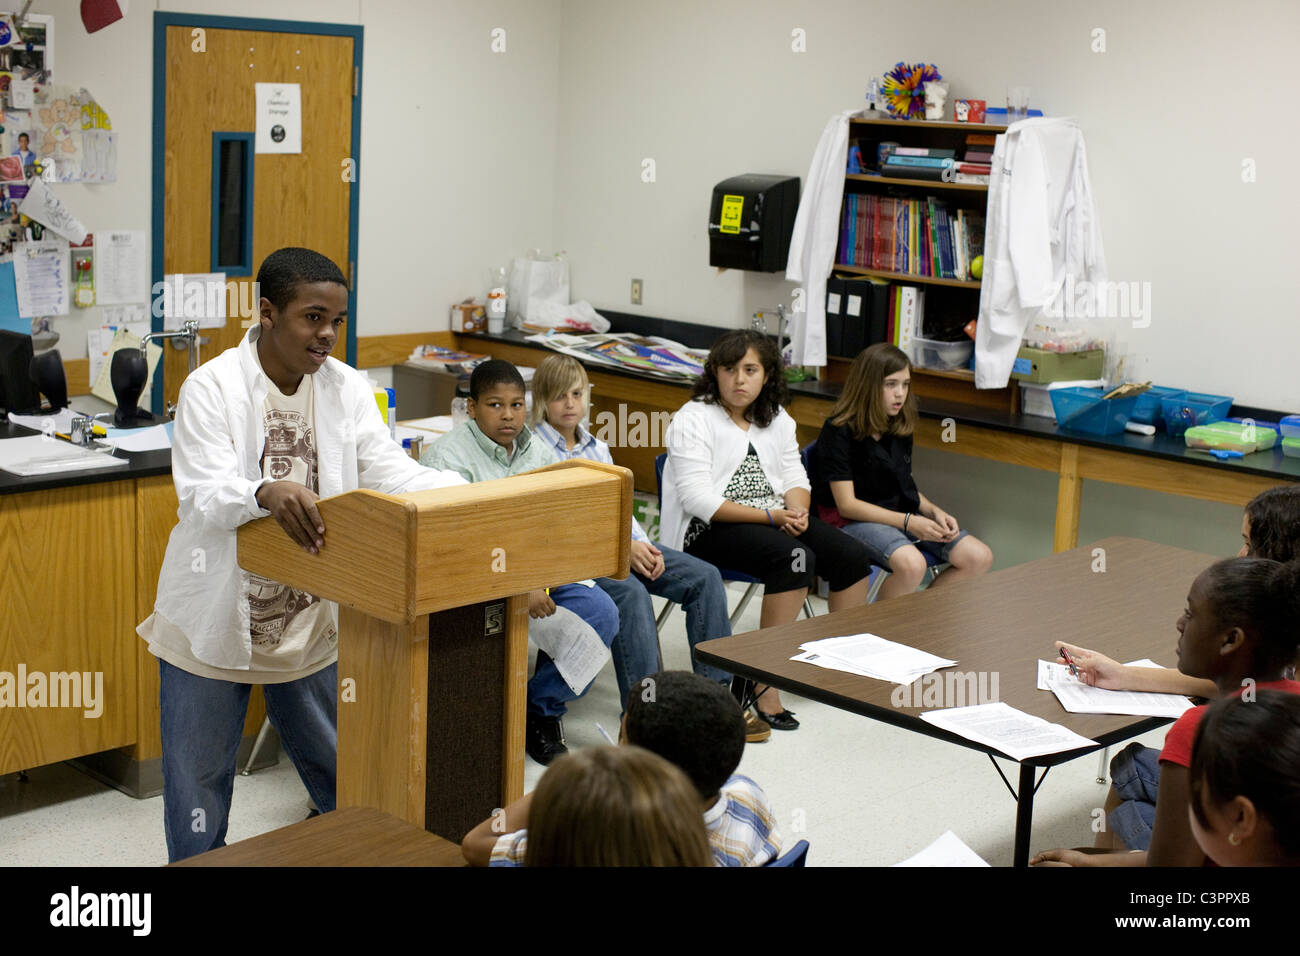 African American Boy Speaks In Front Of Students During